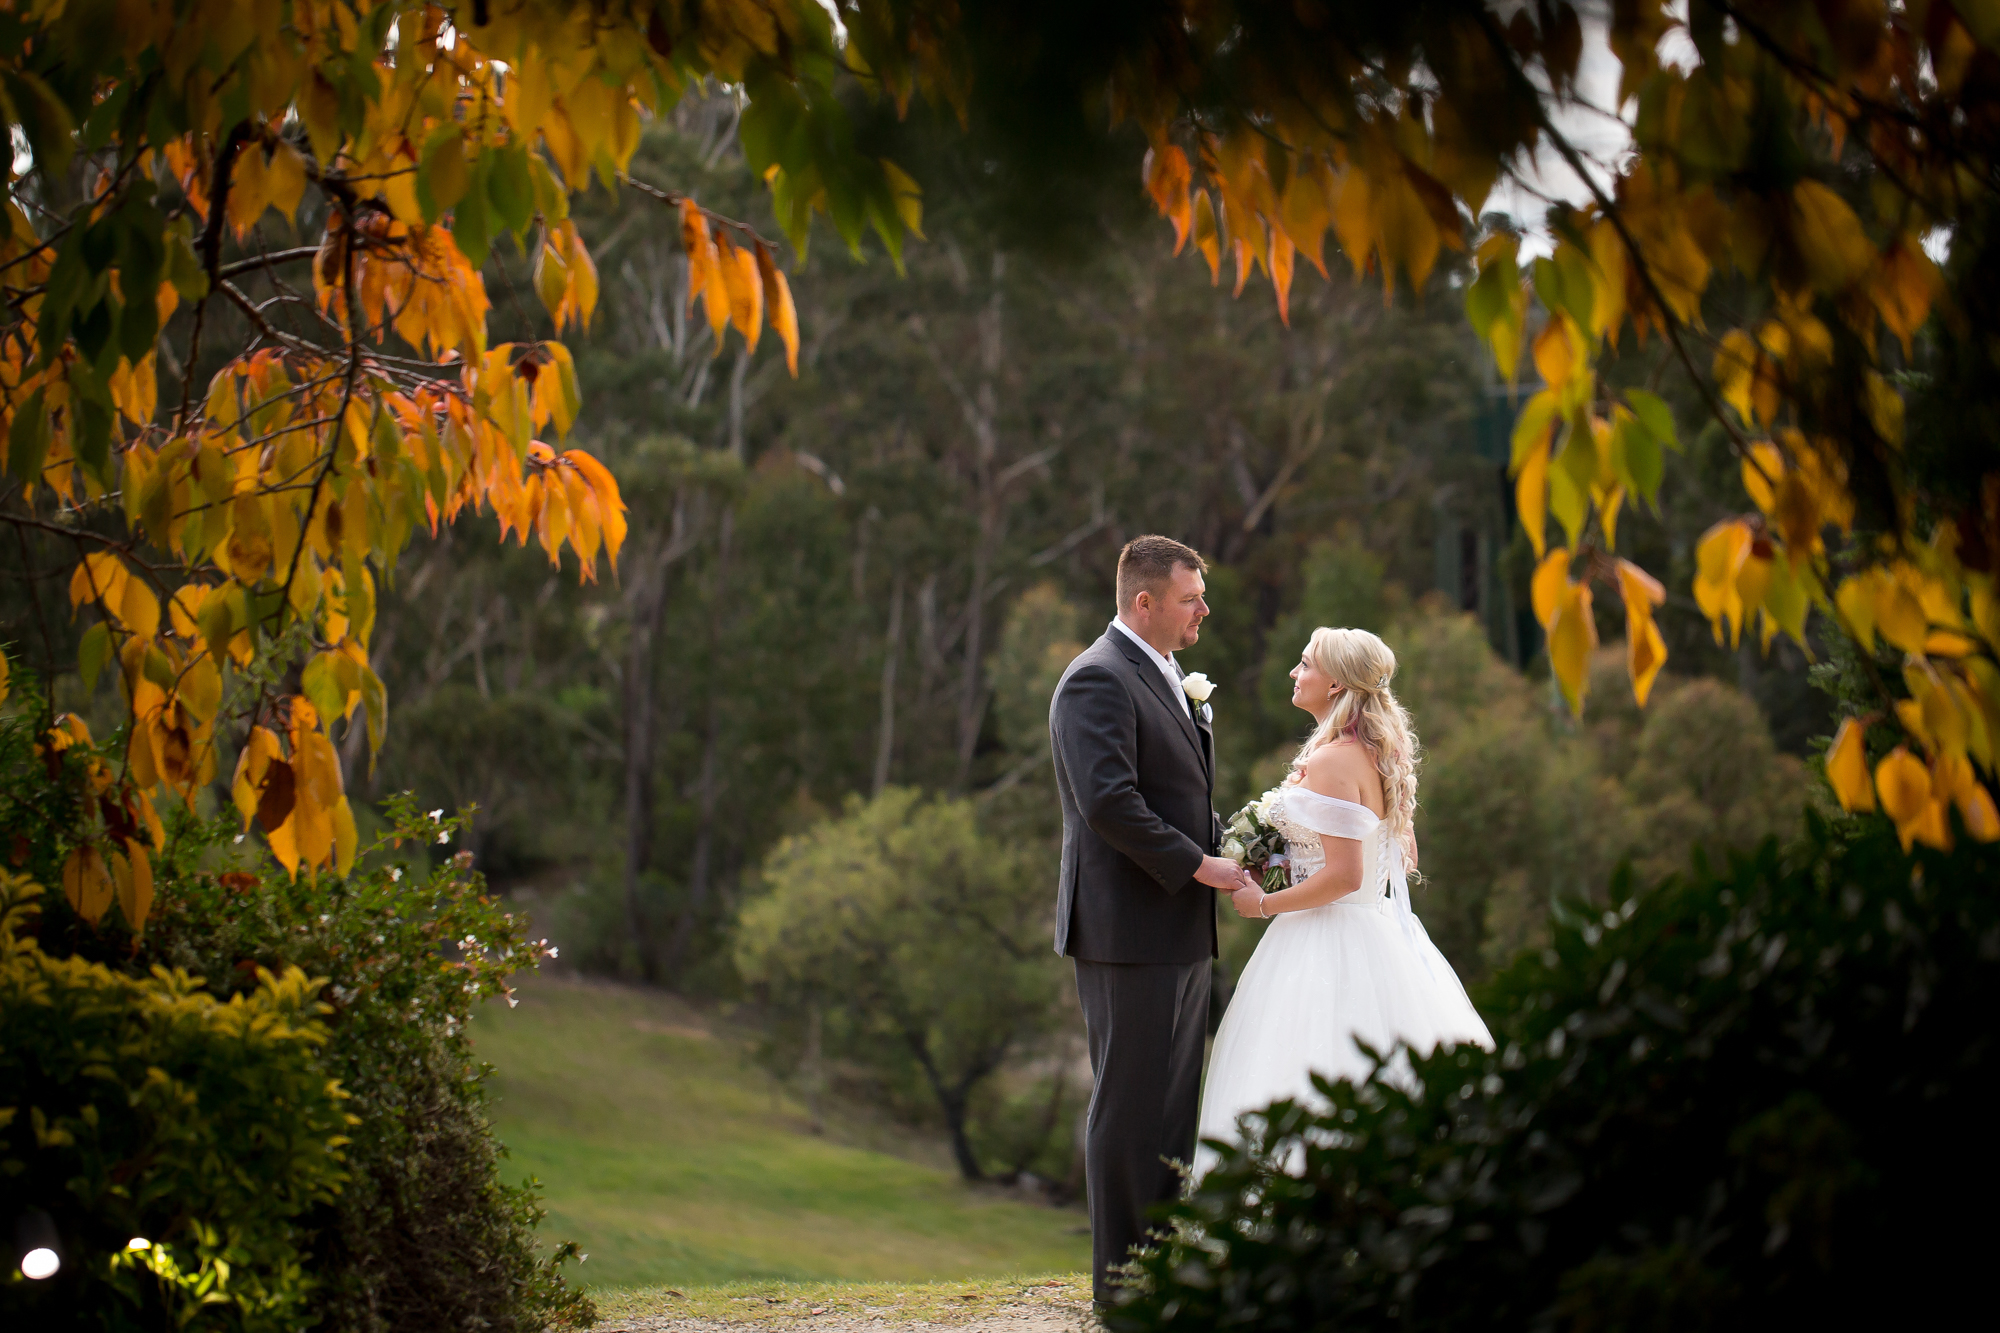 Chris+Dee_Easy_Weddings-1.jpg